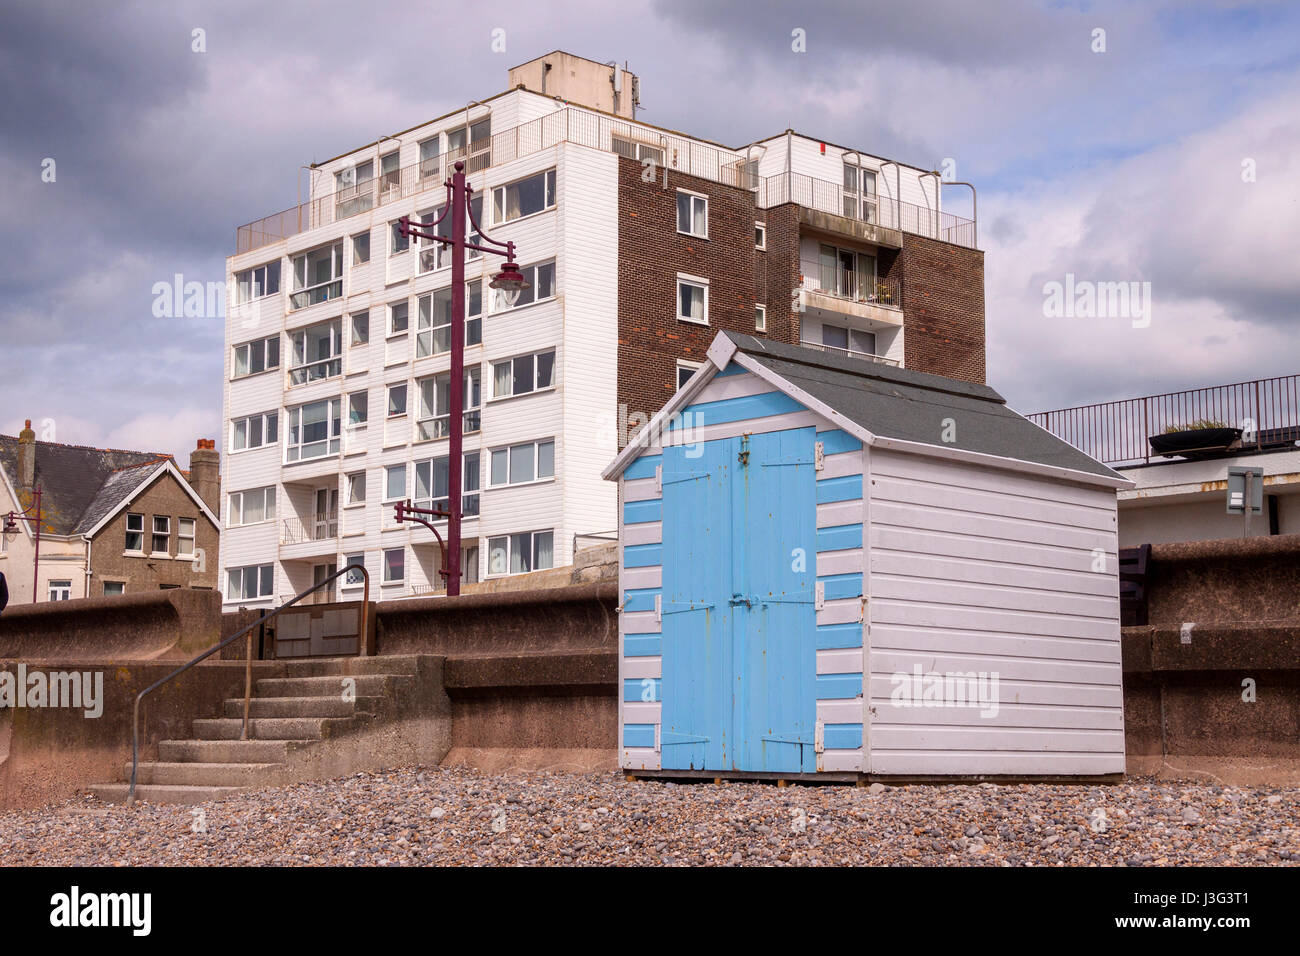 beach-huts-on-the-beach-at-seaton-devon-